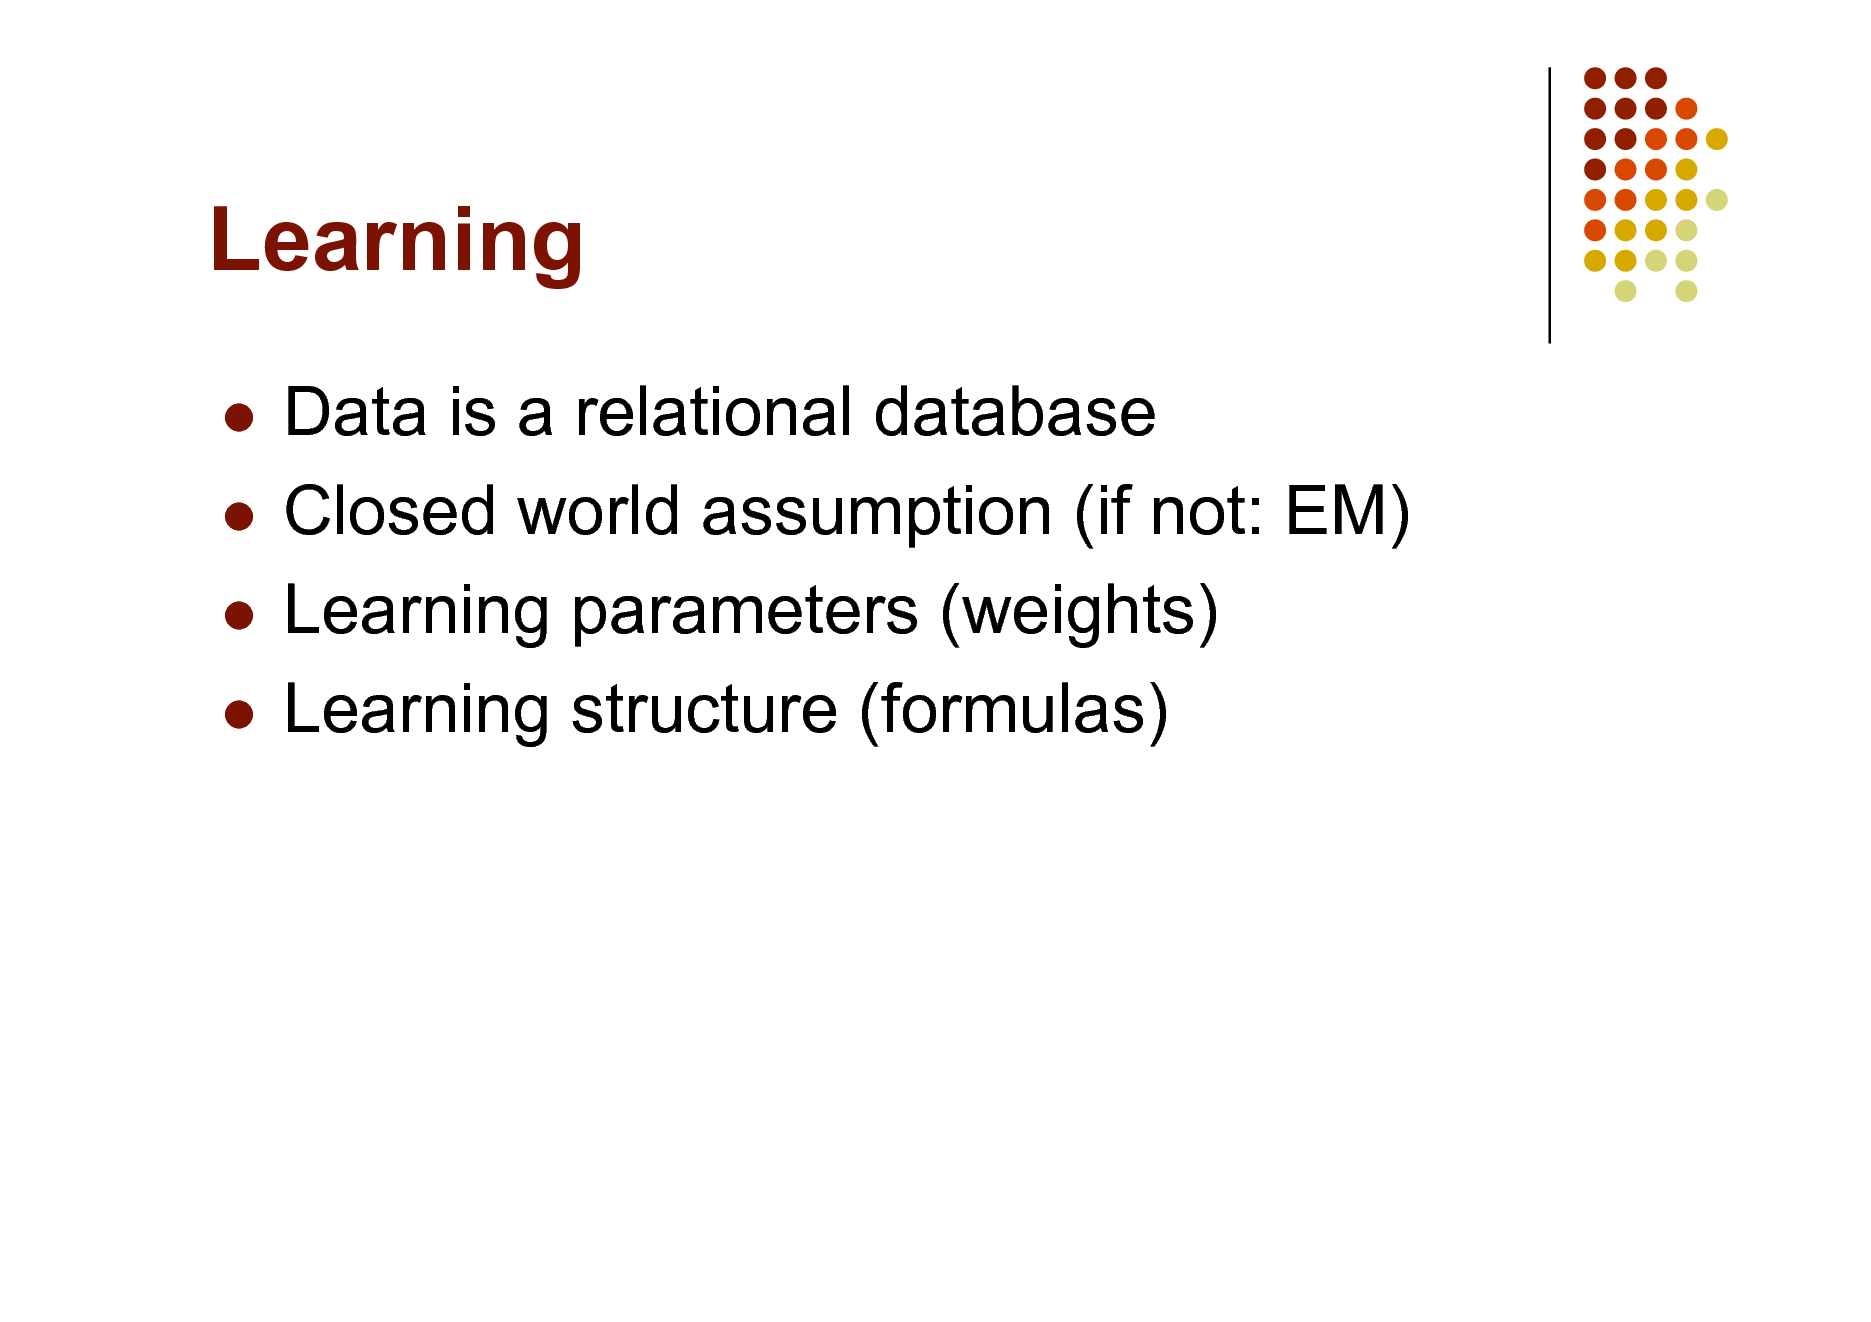 Slide: Learning Data is a relational database  Closed world assumption (if not: EM)  Learning parameters (weights)  Learning structure (formulas)